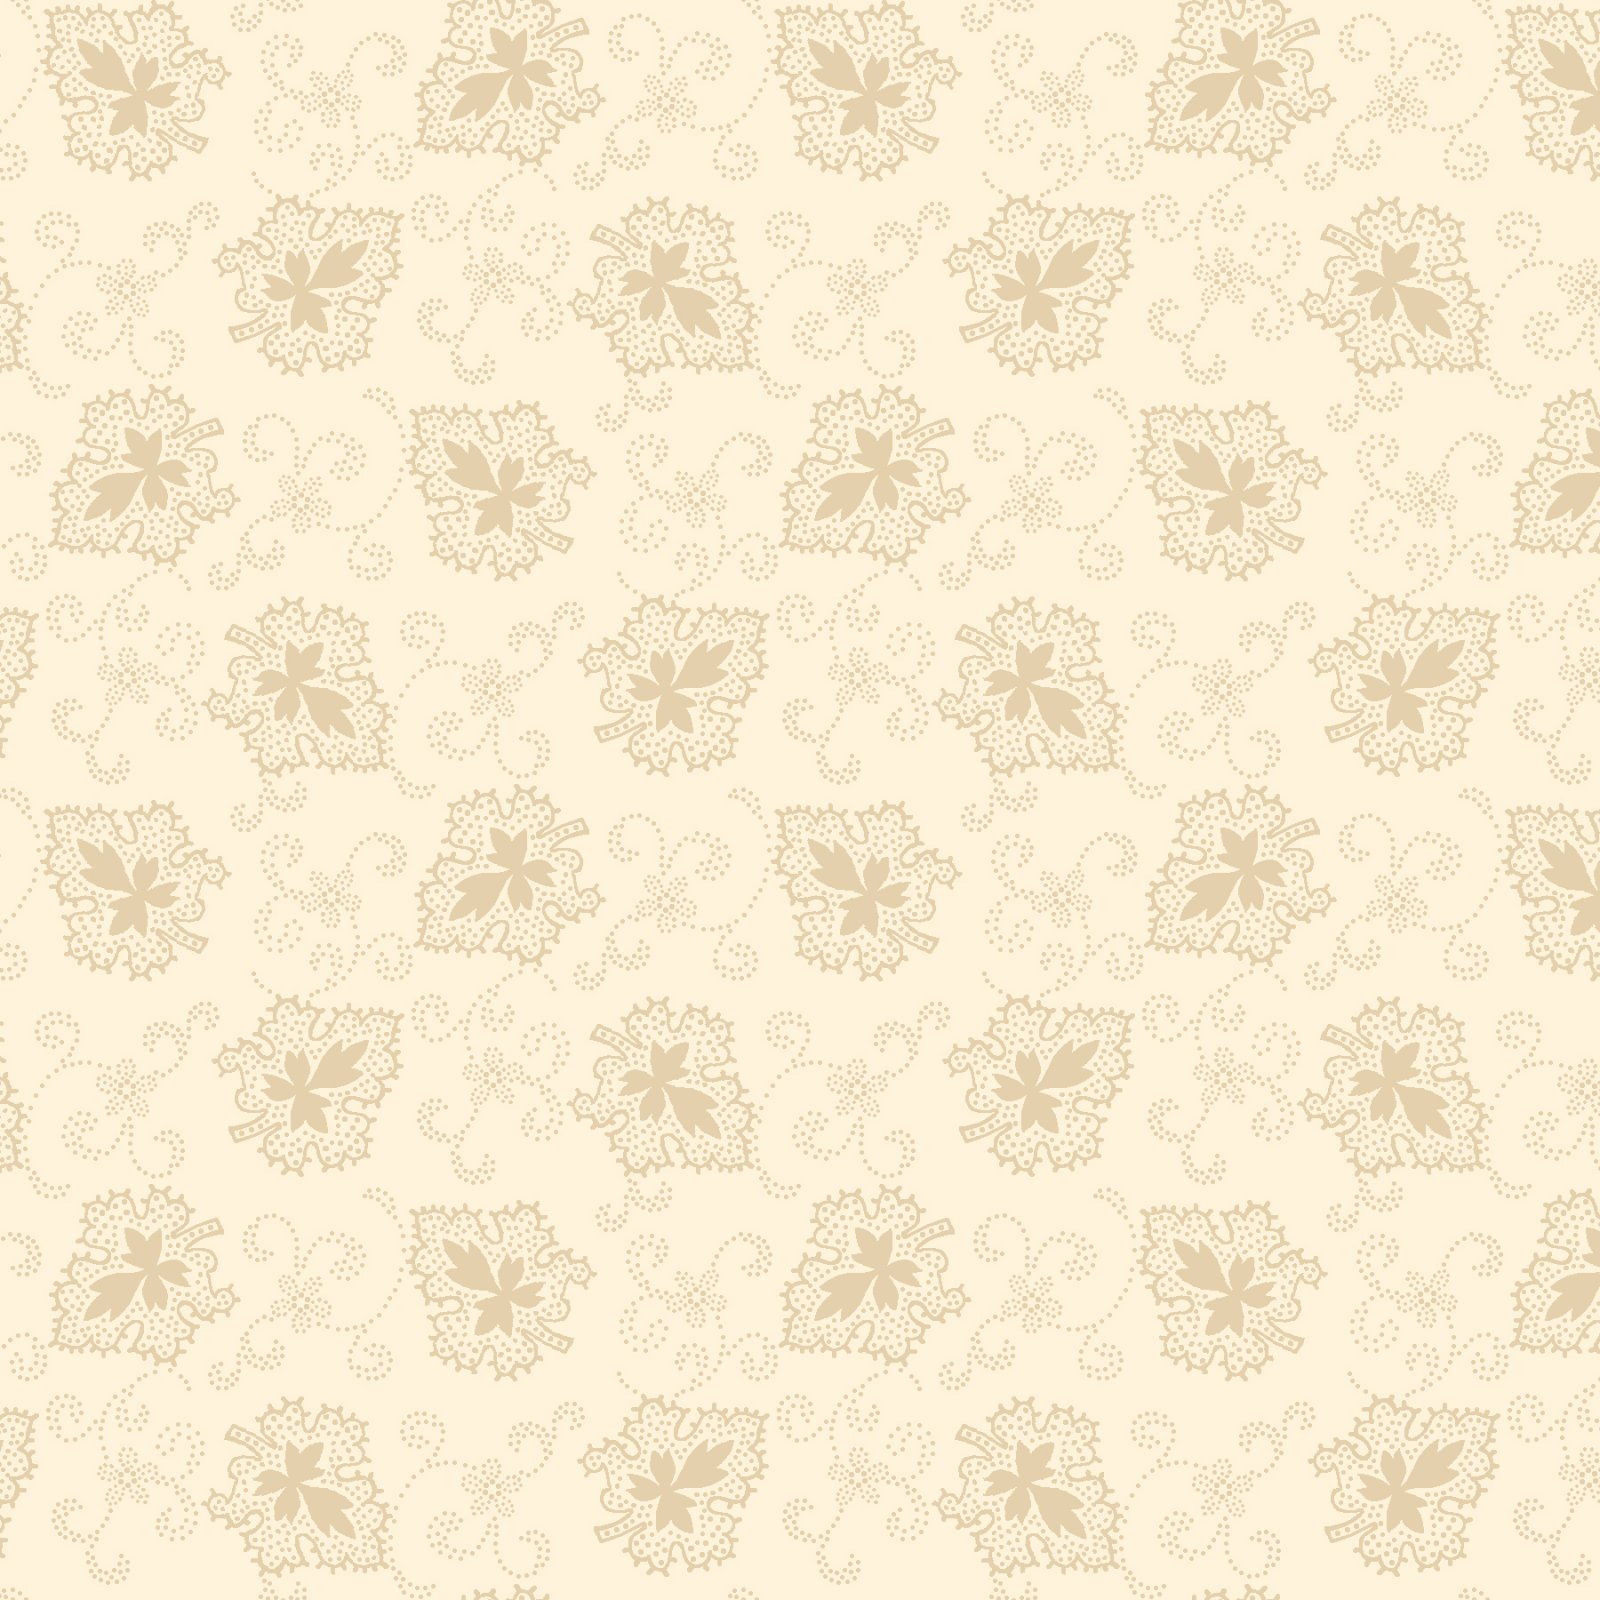 Buttermilk Autumn - 2275-33 * 1/2 yard